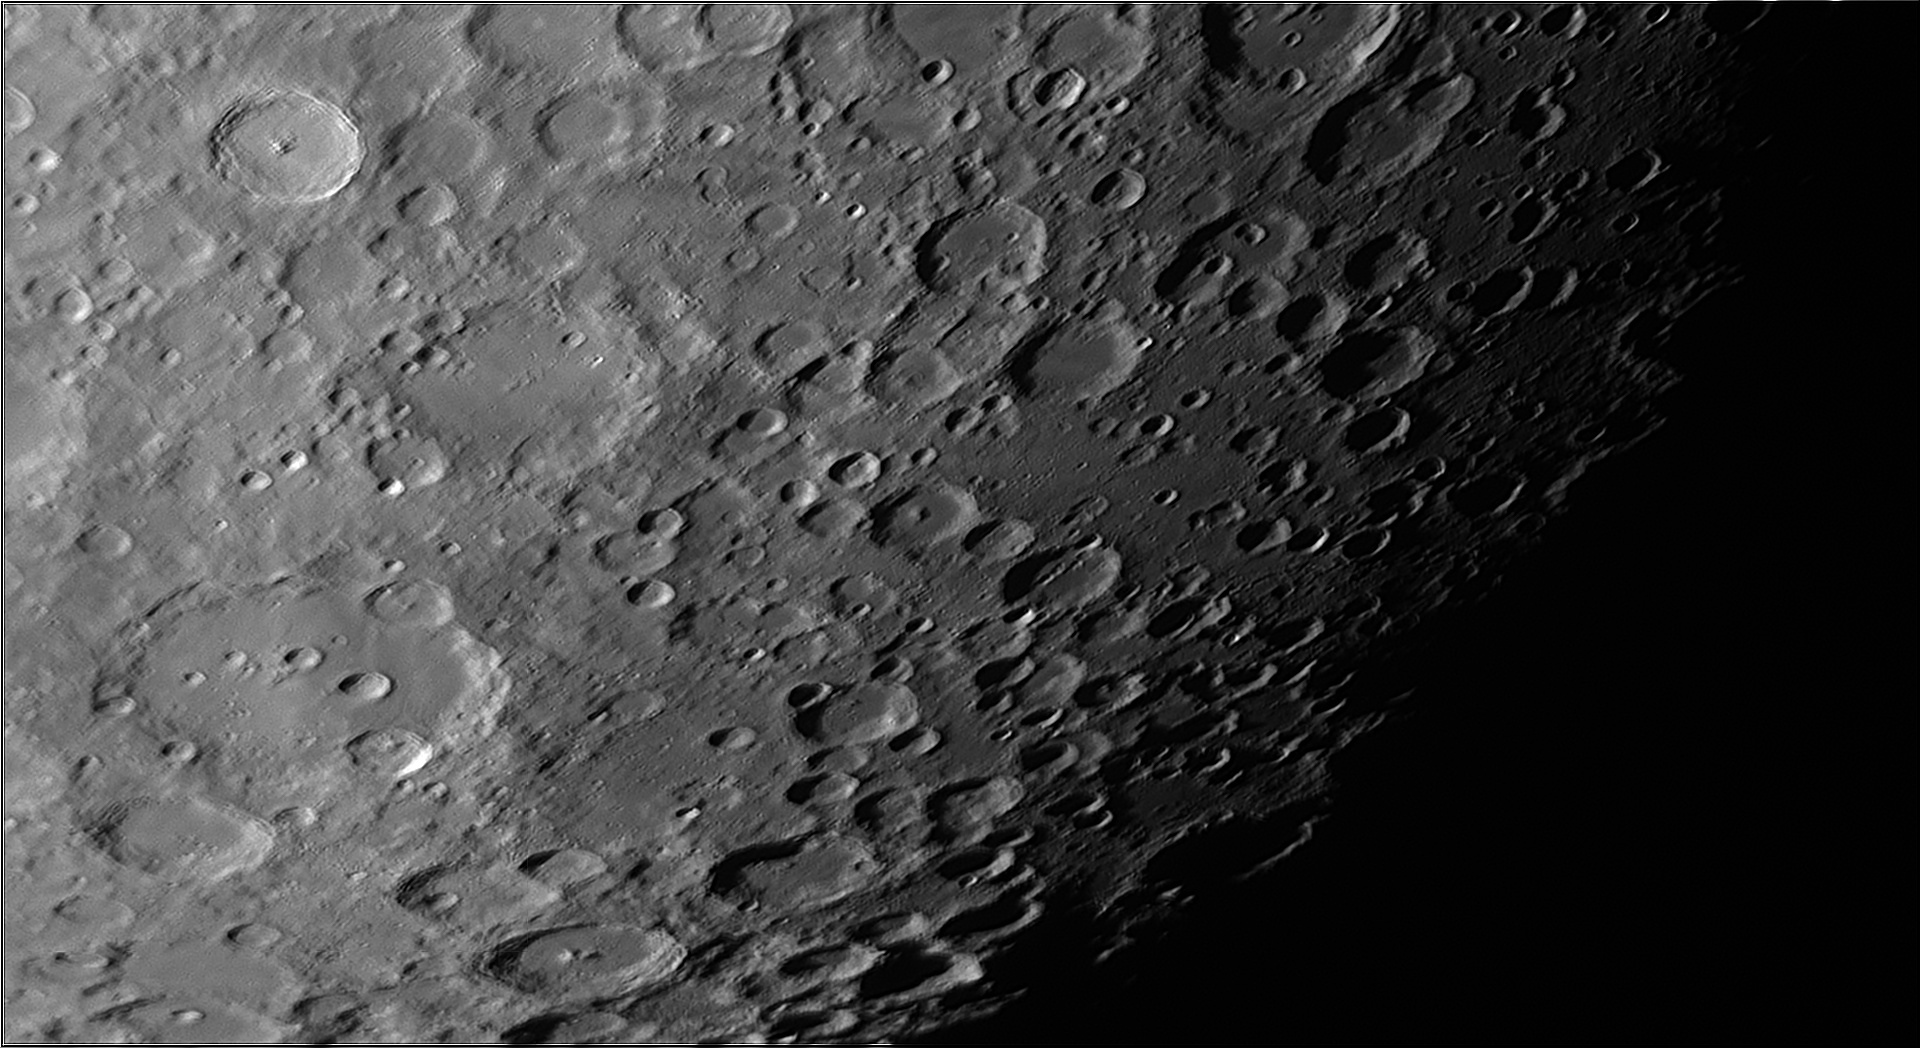 5dd1be3a8d011_Moon_074303_171119_ZWOASI290MM_IR_650nm_AS_P30_lapl4_ap808.jpg.dbc5a40b65738dcb47dea93cf7374f44.jpg